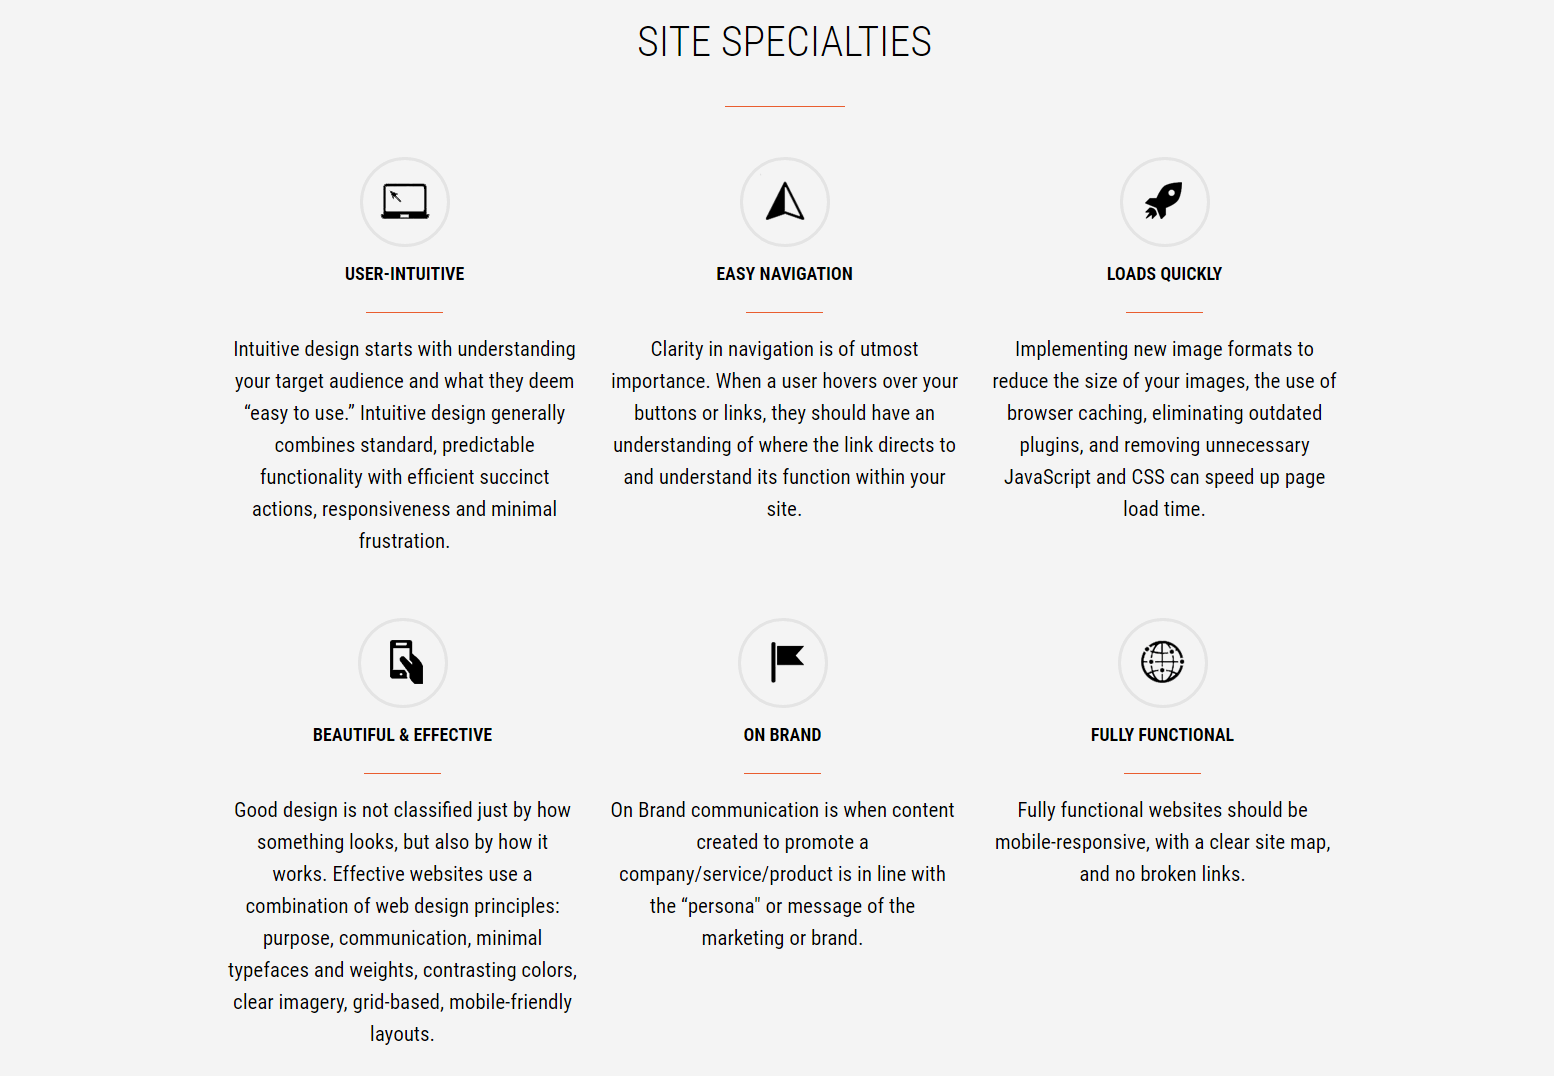 site specialties